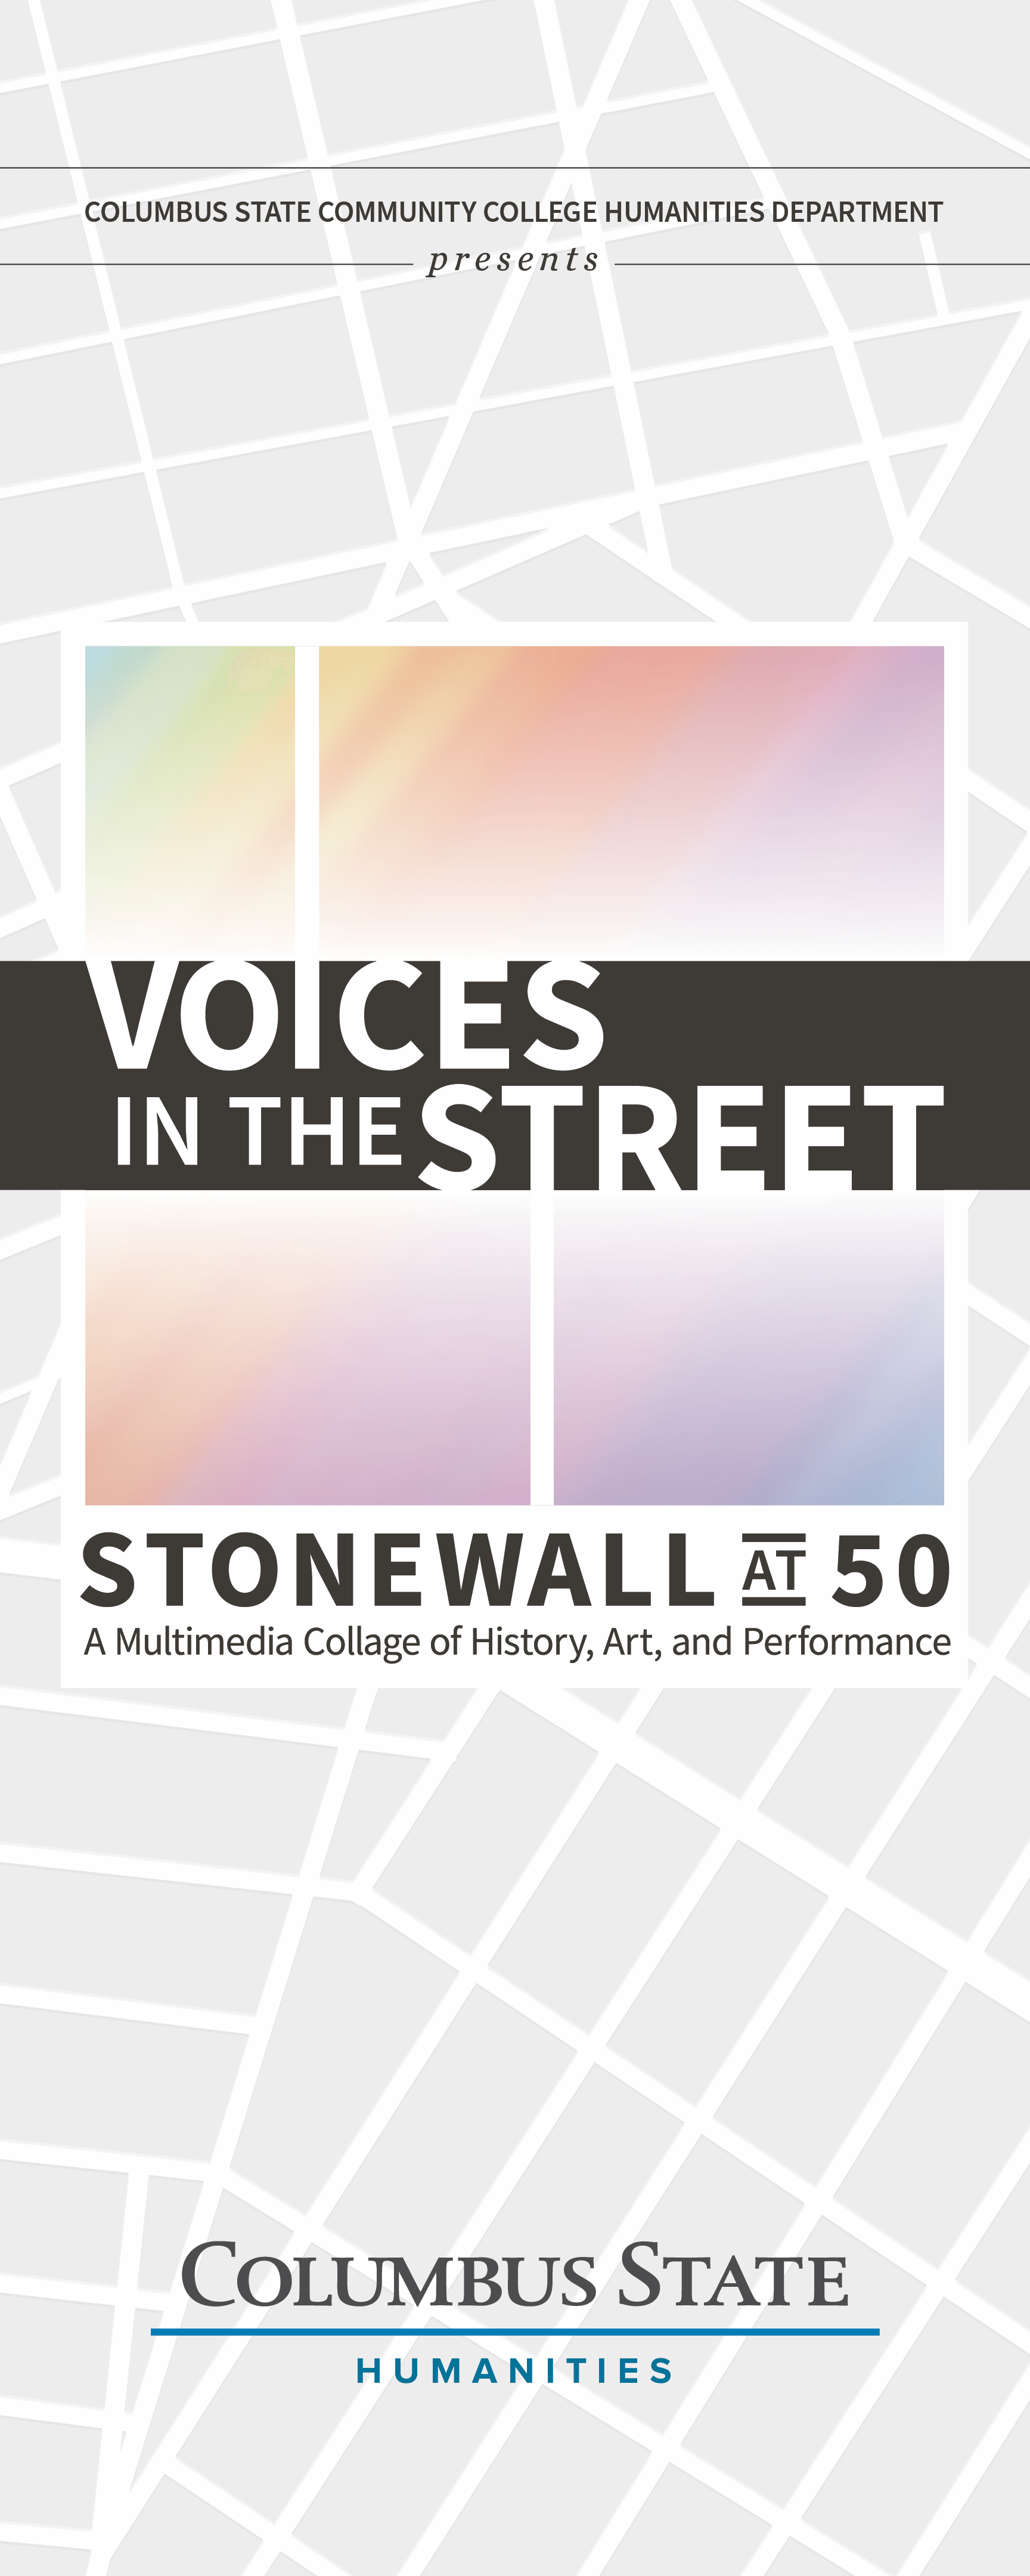 Voices in the Street: Stonewall at 50 Introduction Poster